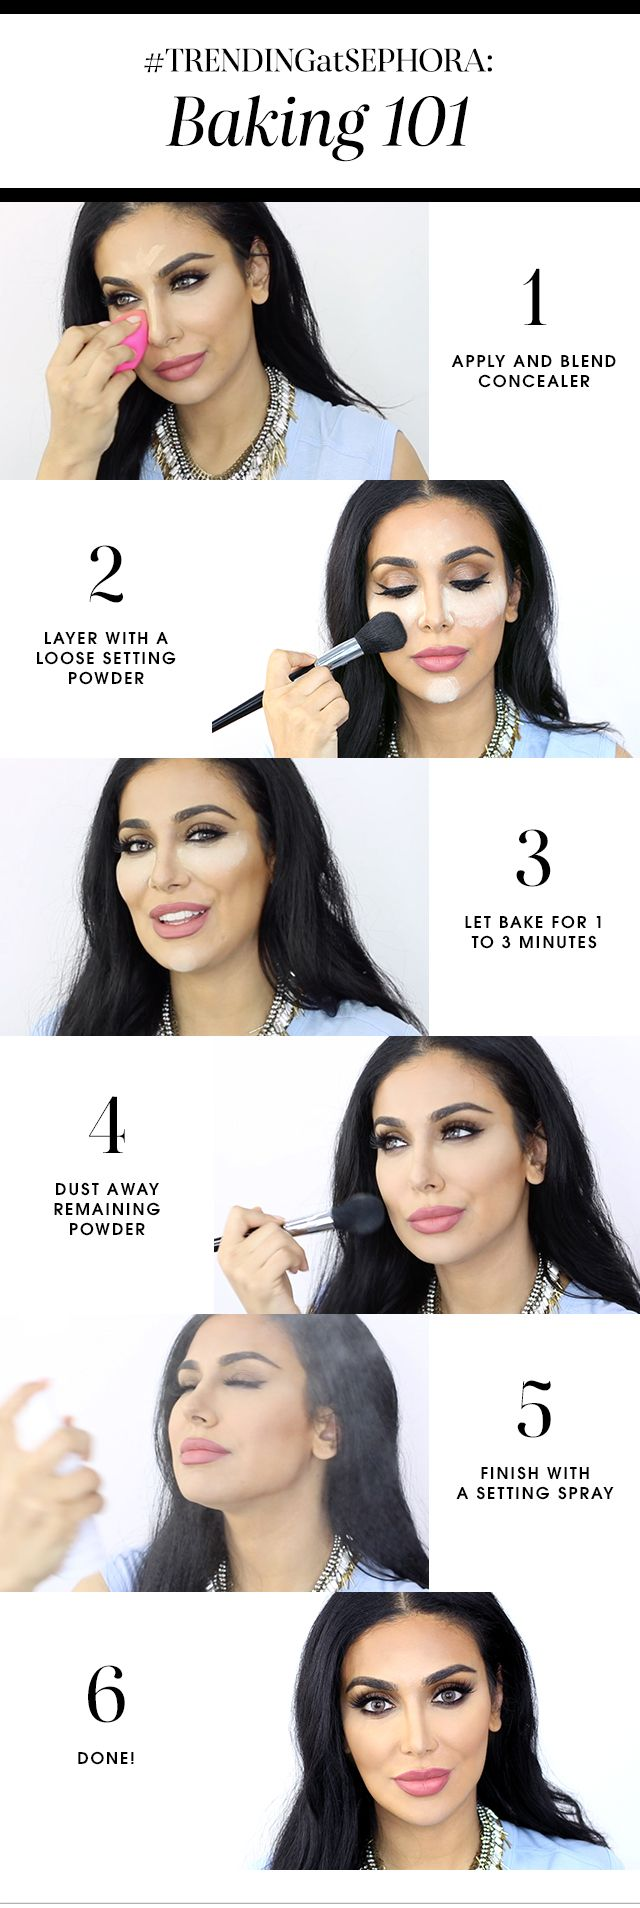 #MakeupBaking isn't going anywhere. Here's how to nail the technique: http://seph.me/1OWeyM3 #TheSephoraGlossy #baking